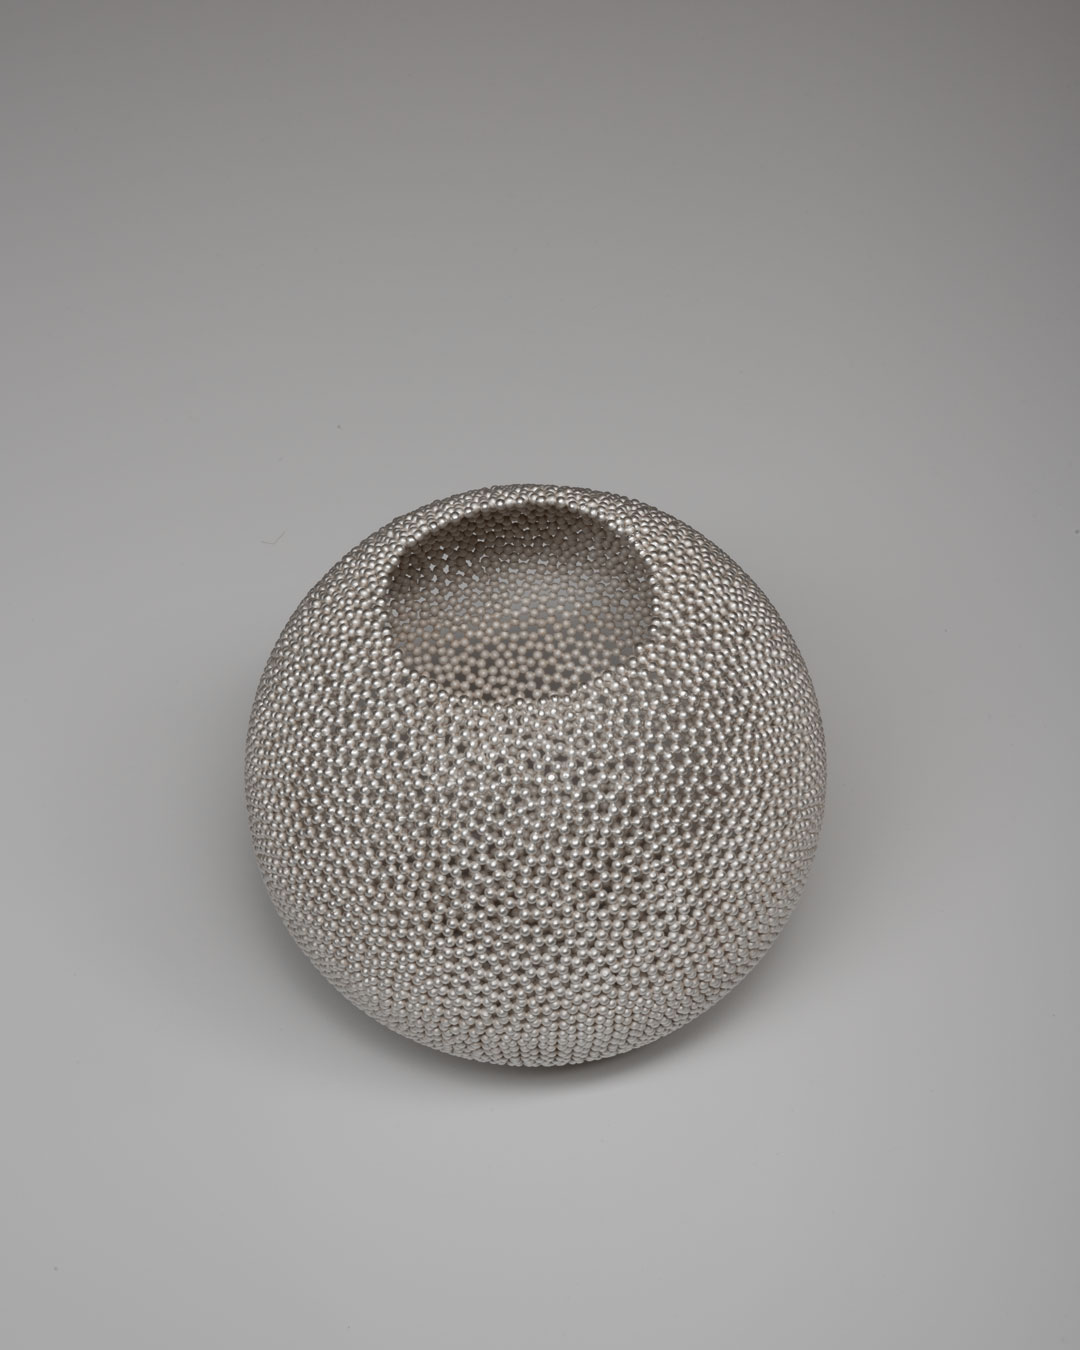 David Huycke, Pearl Bol, 2003, object; silver, 170 x 160 mm, €4500 (image 2 of 2)